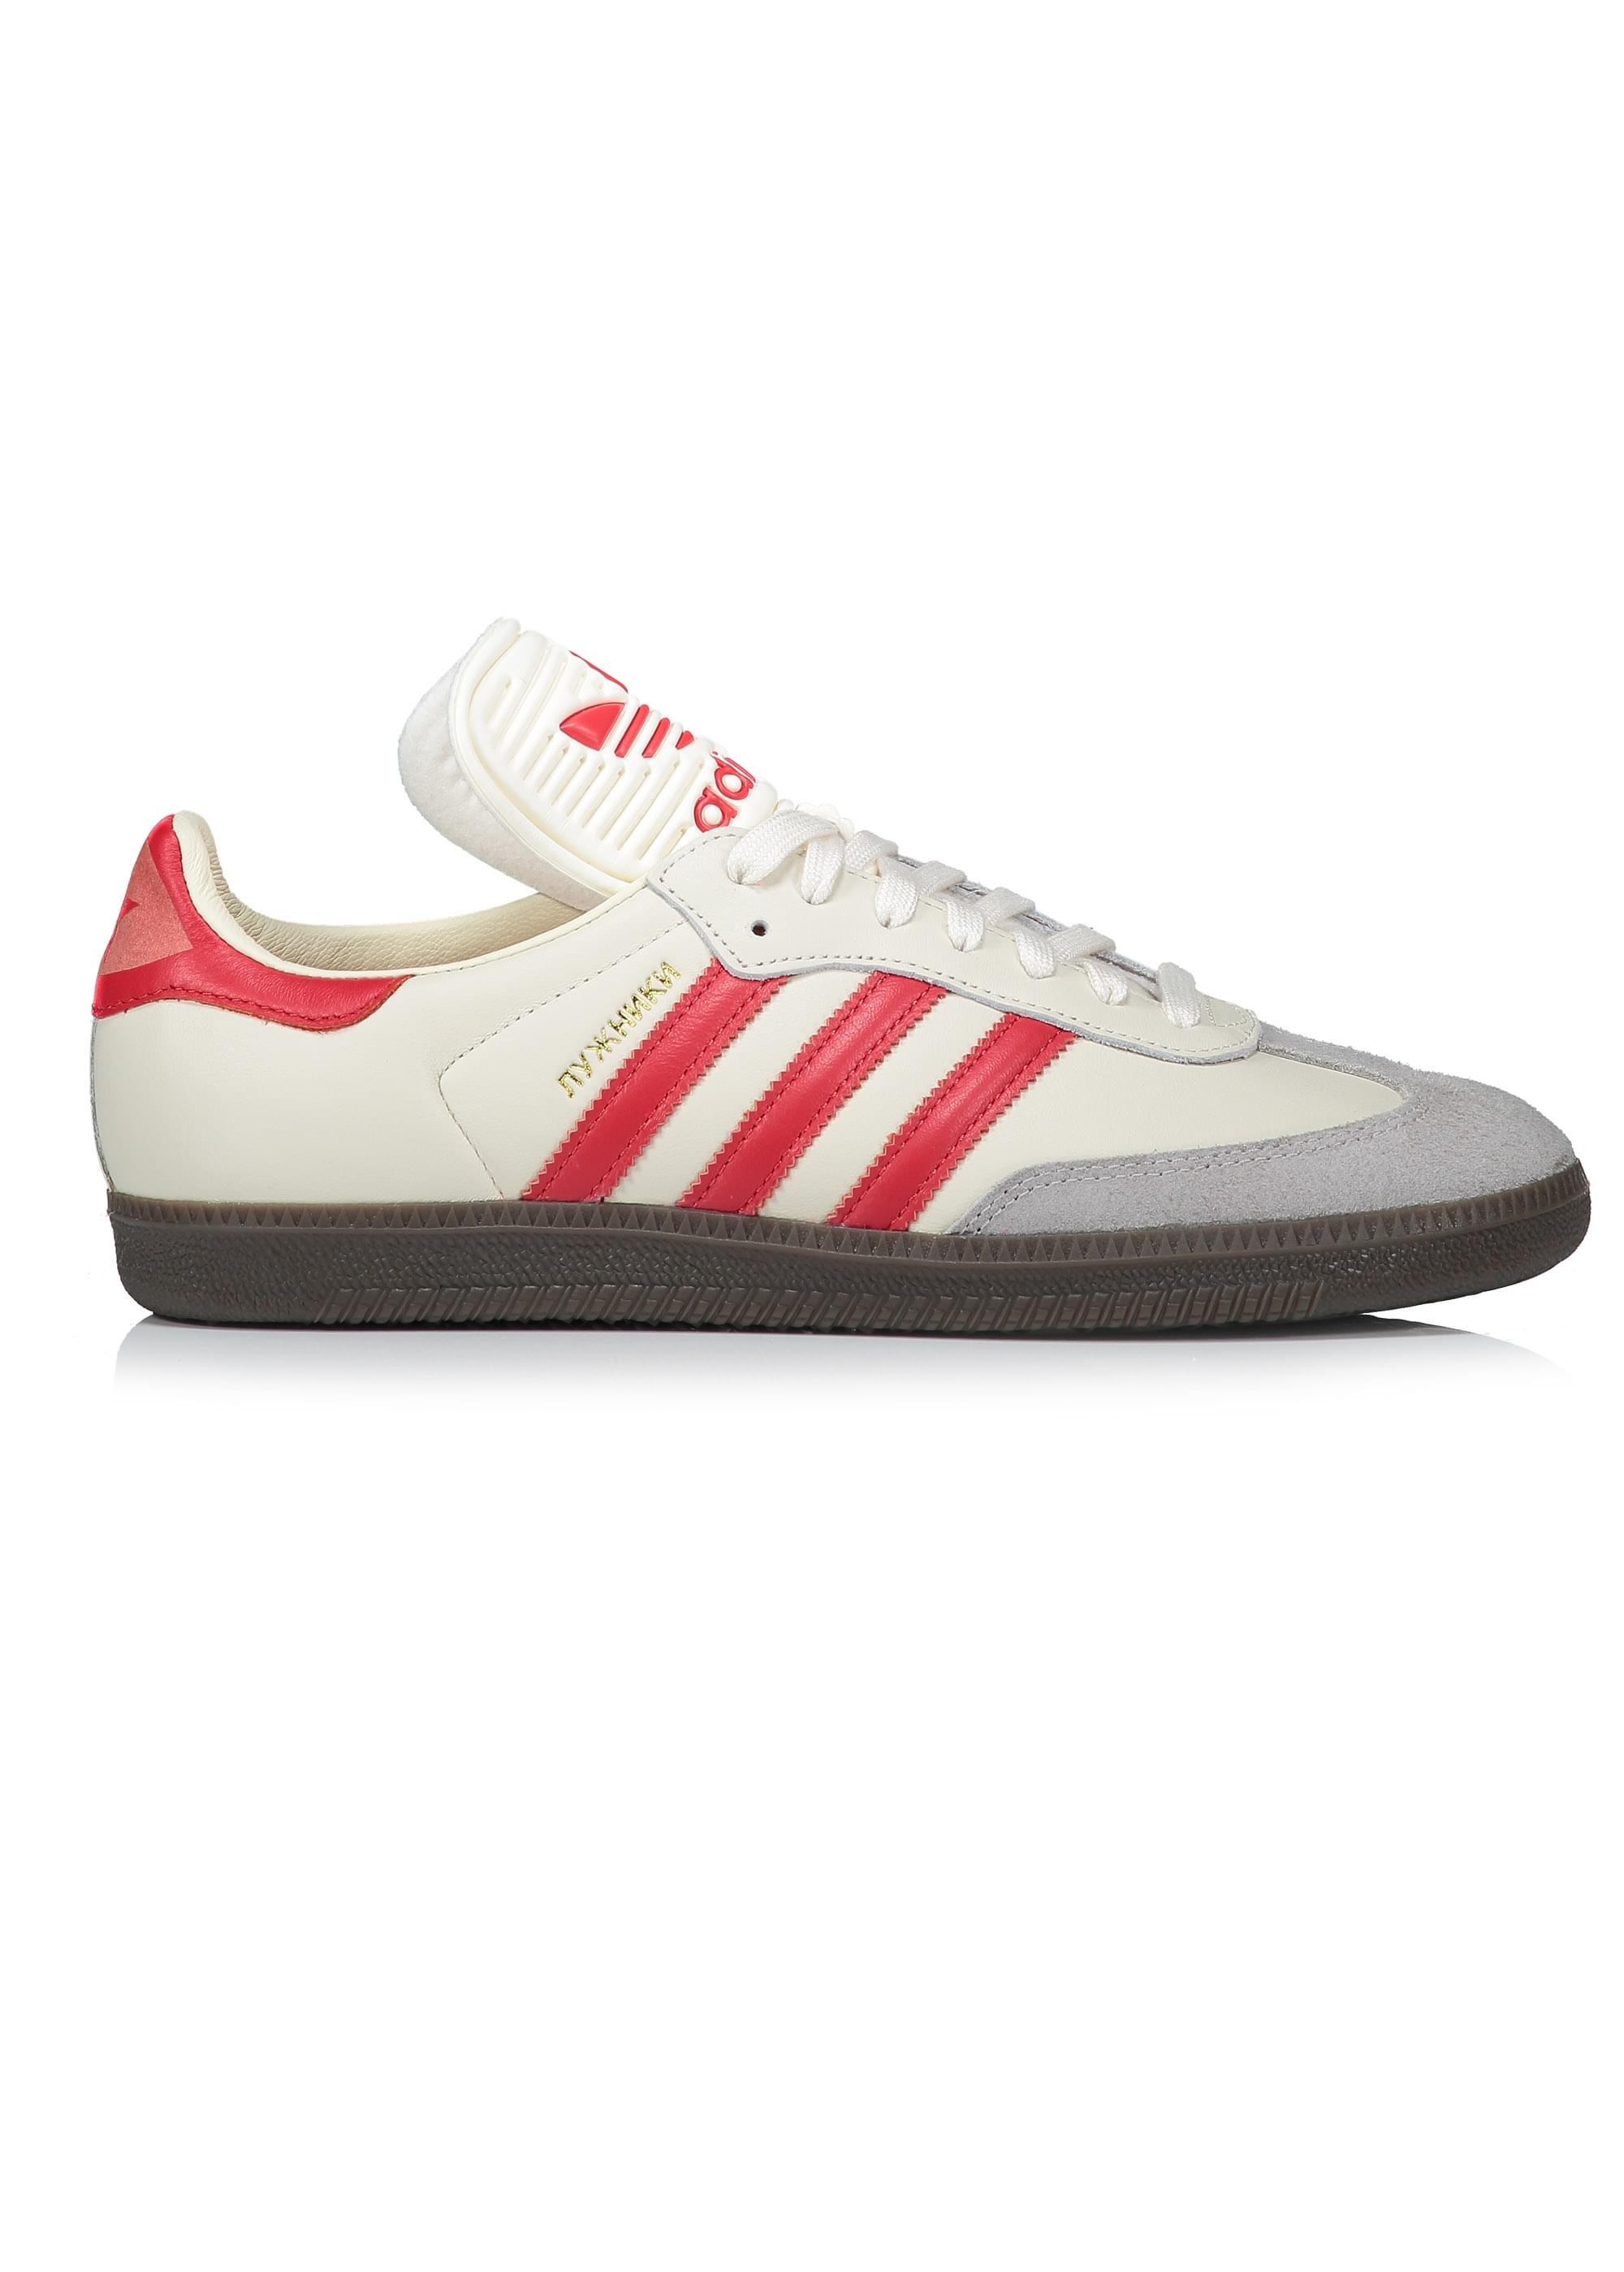 18488aa555a286 adidas Originals Footwear Samba Classic OG - White   Red - Trainers ...